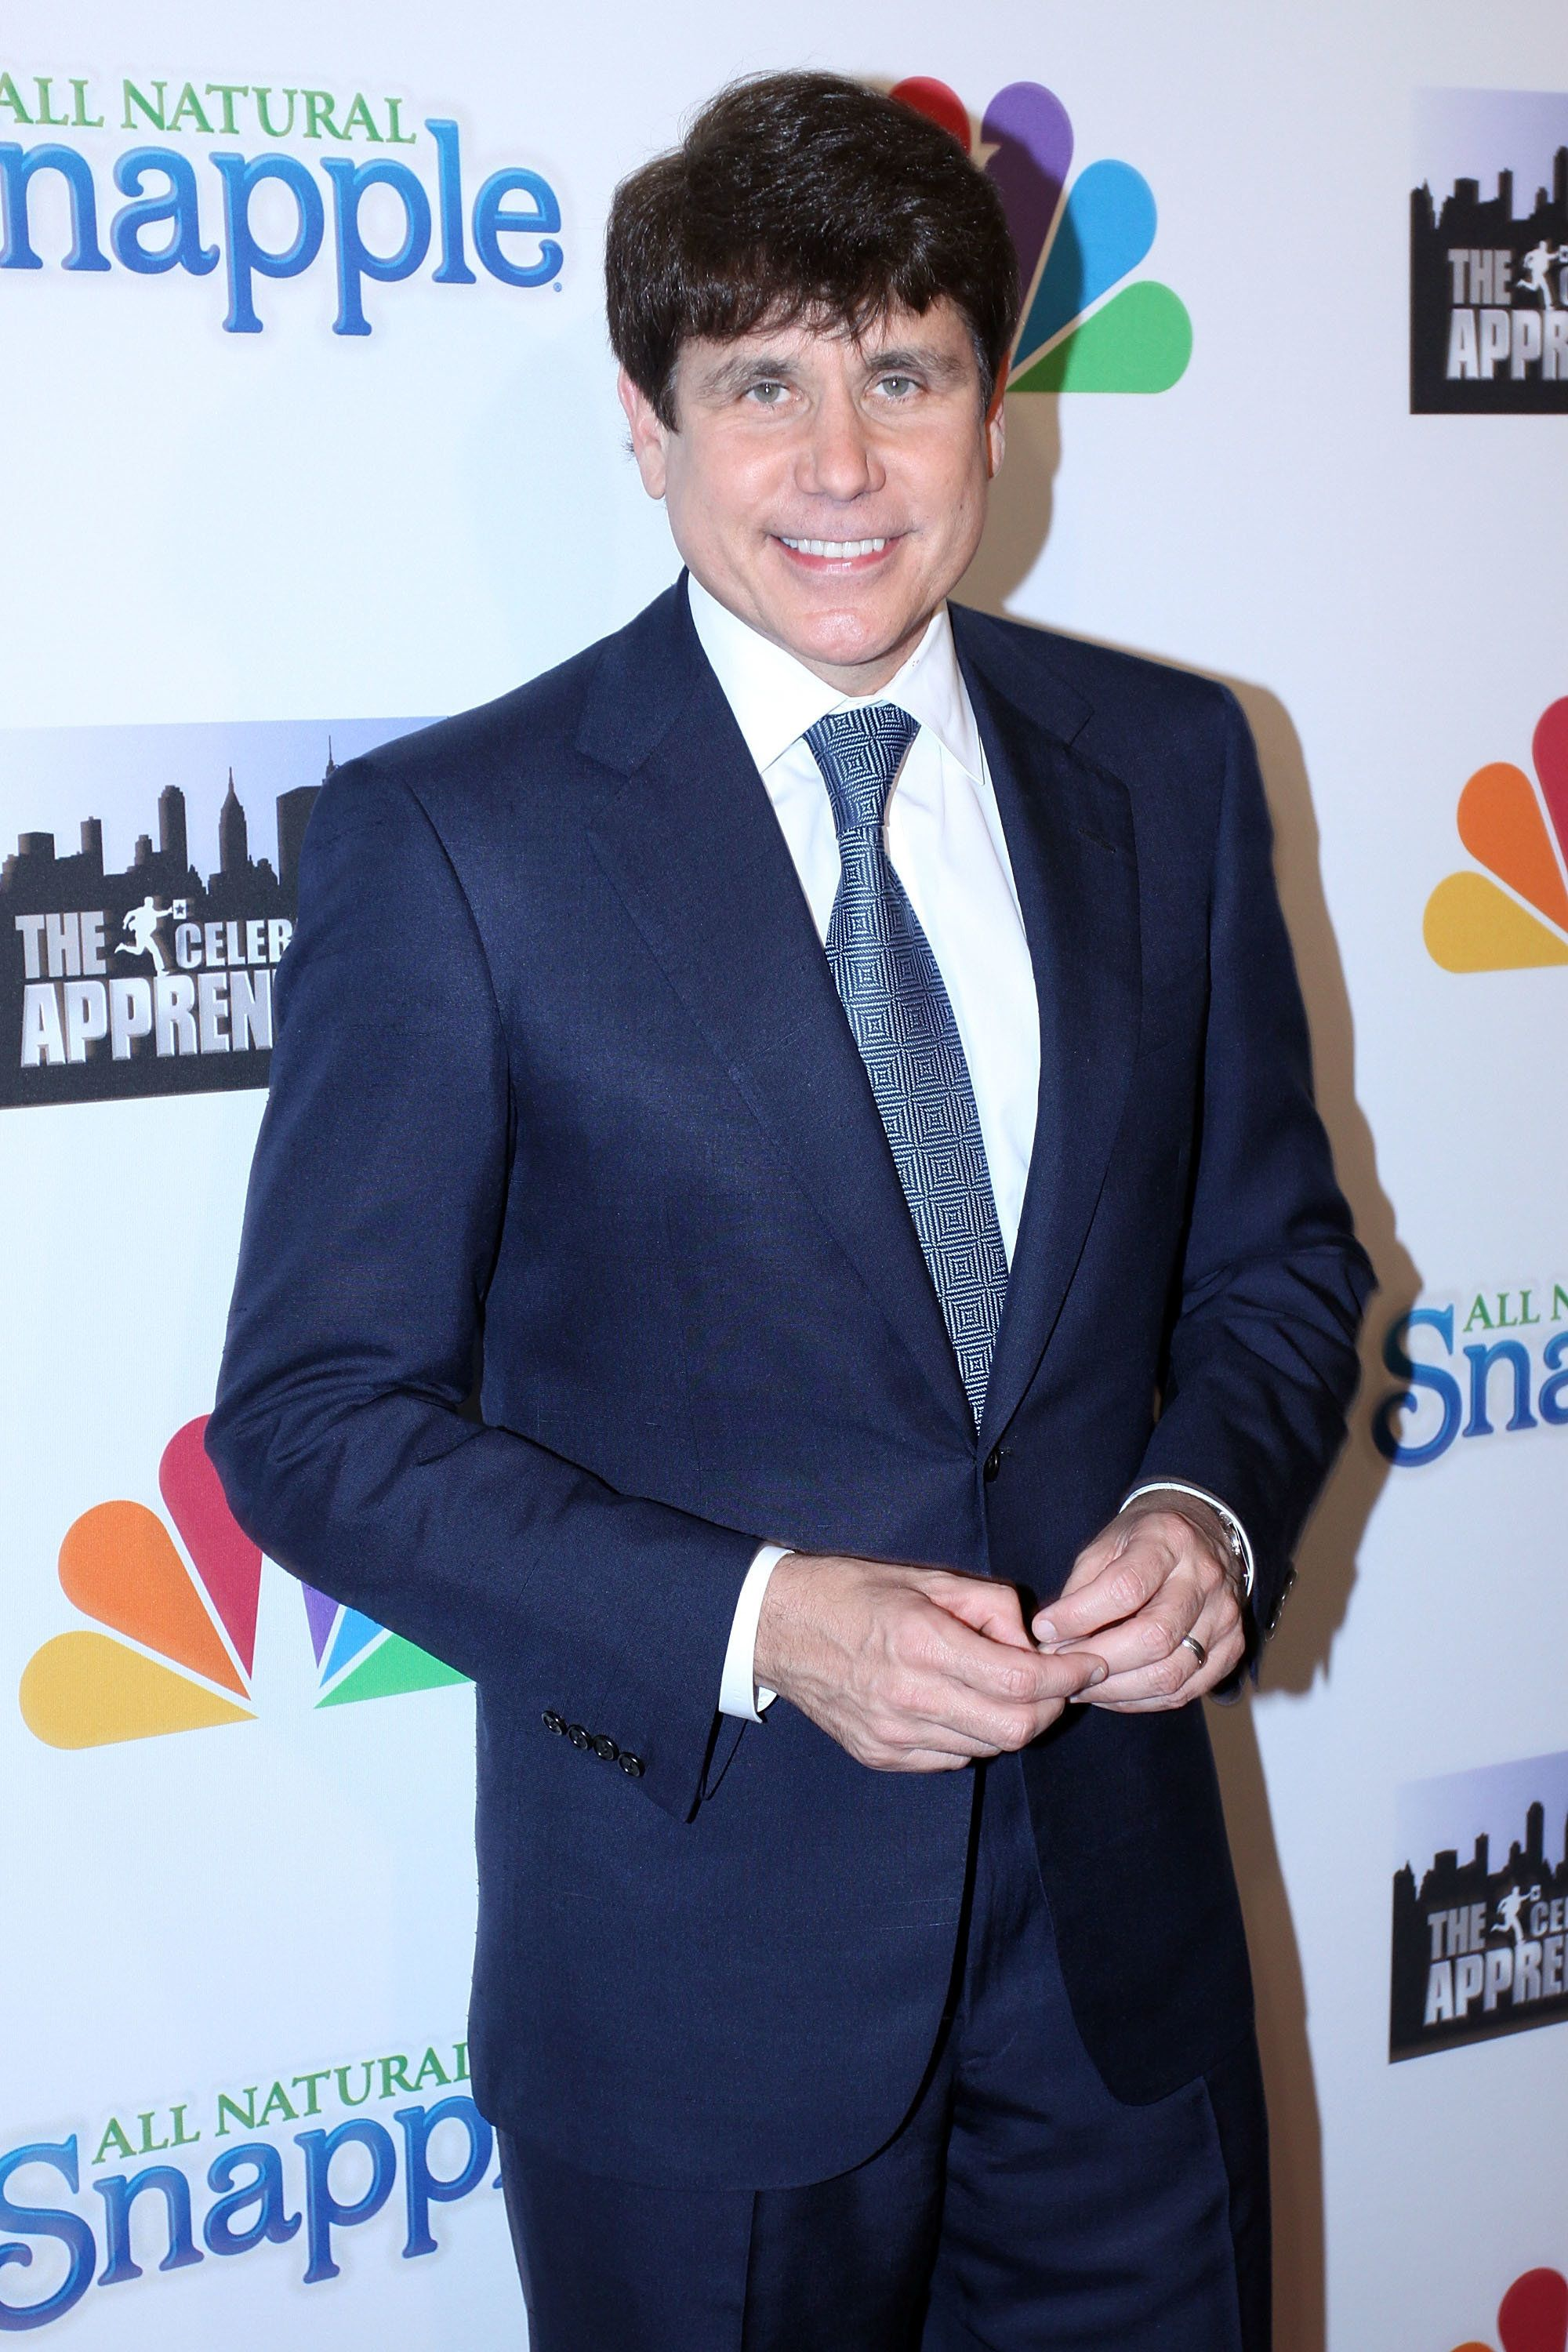 NEW YORK - MAY 23:  Former Illinois Governor Rod Blagojevich attends 'The Celebrity Apprentice' Season 3 finale after party at the Trump SoHo on May 23, 2010 in New York City.  (Photo by Moises De Pena/FilmMagic)